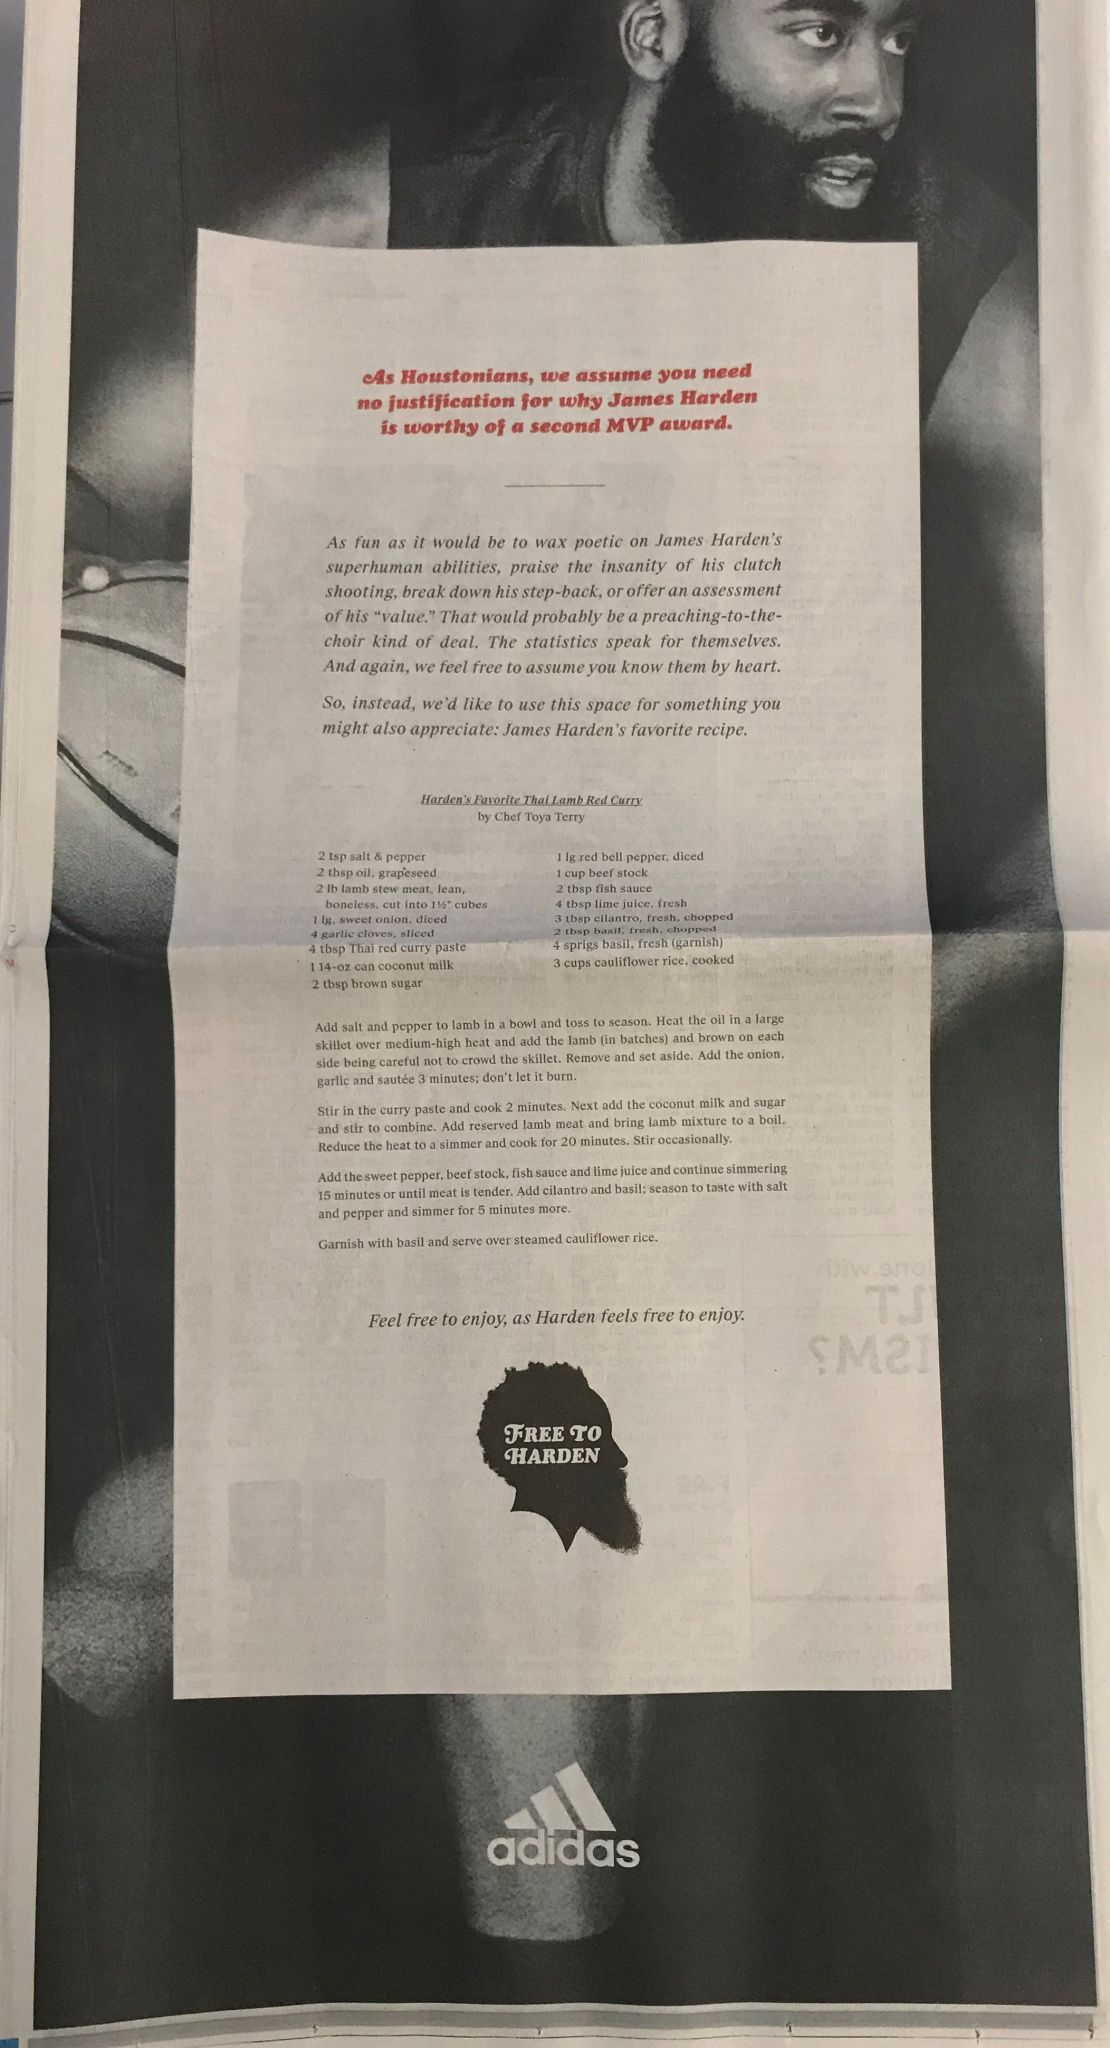 Adidas Shares James Harden S Favorite Recipe In Mvp Ad Campaign